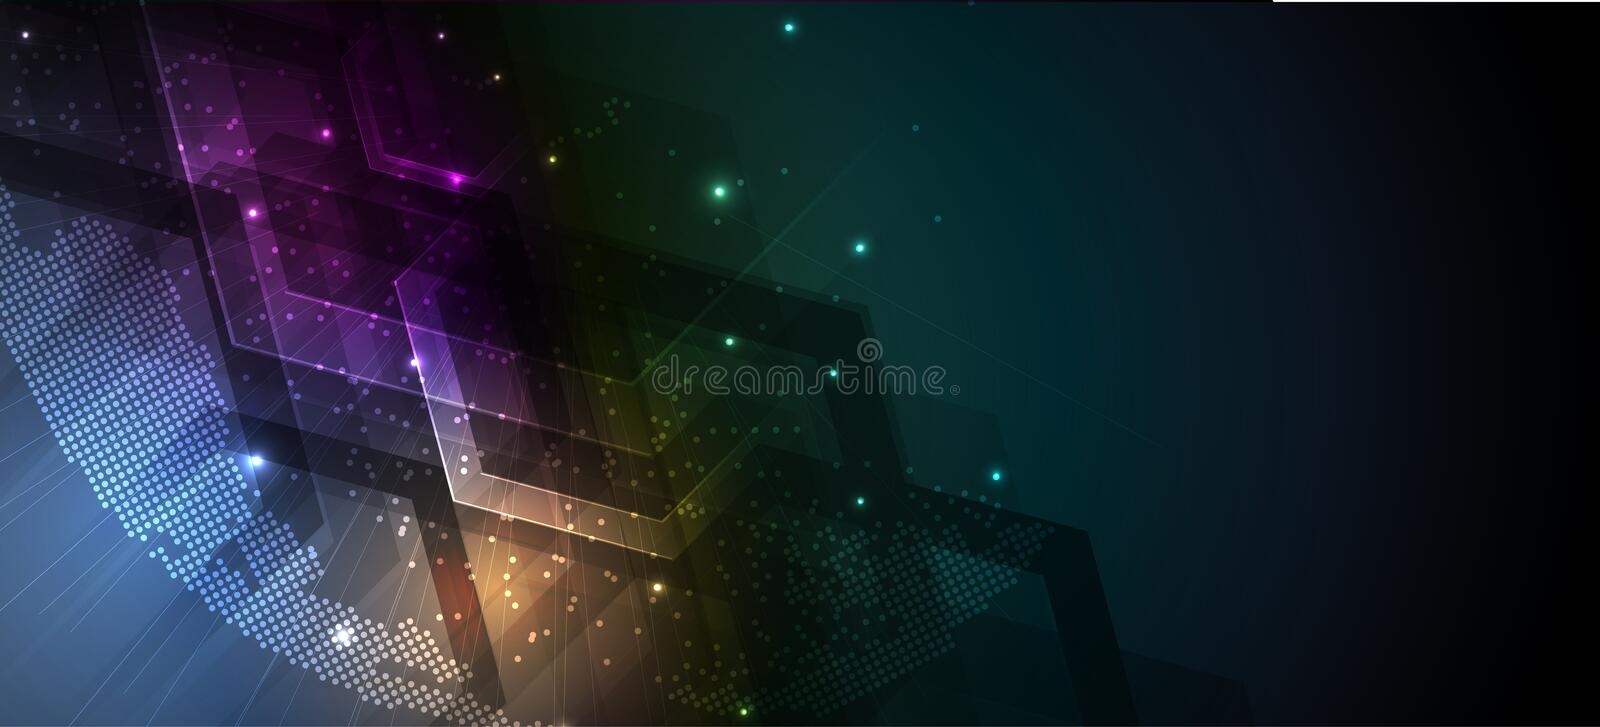 Abstract futuristic fade computer technology business background. Abstract futuristic neural computer technology business background royalty free illustration